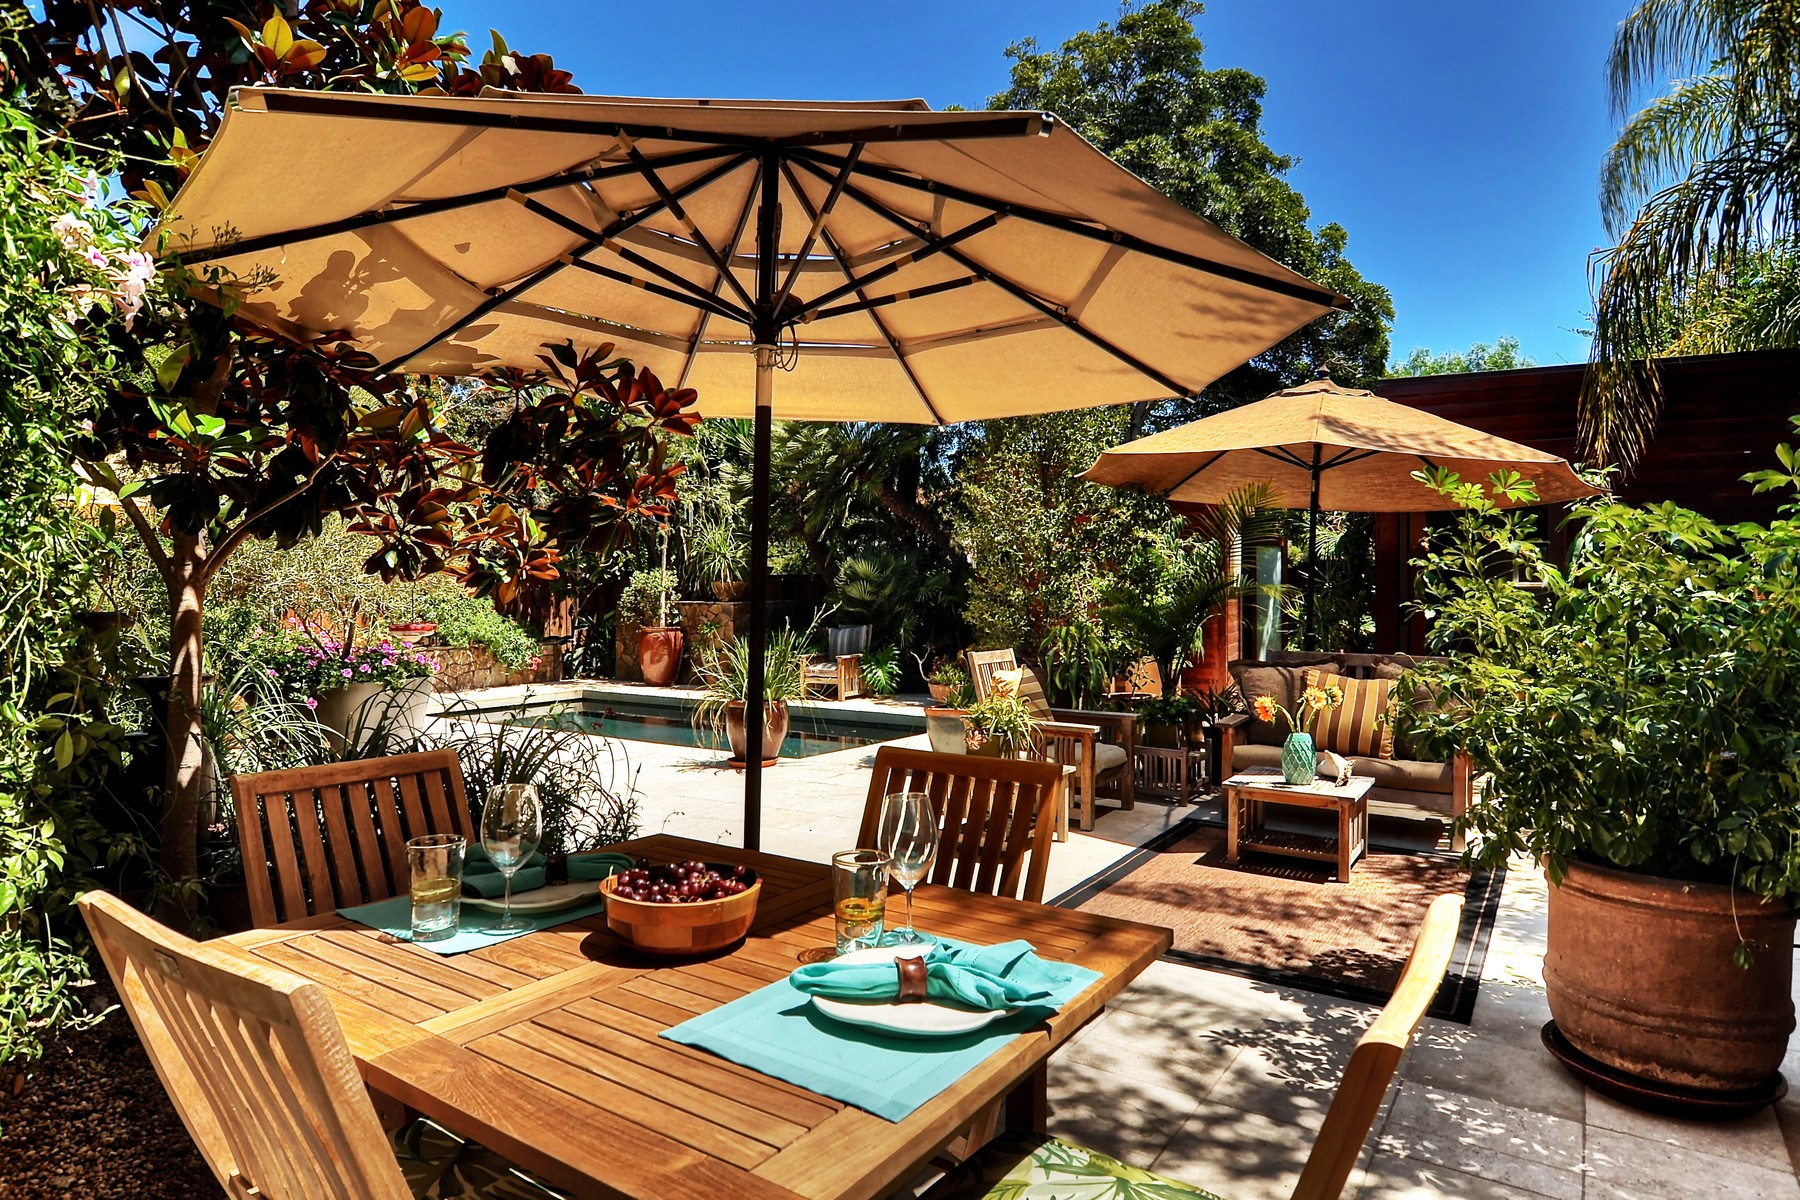 Single Family Home for Sale at 2460 S. Ola Vista San Clemente, California 92672 United States